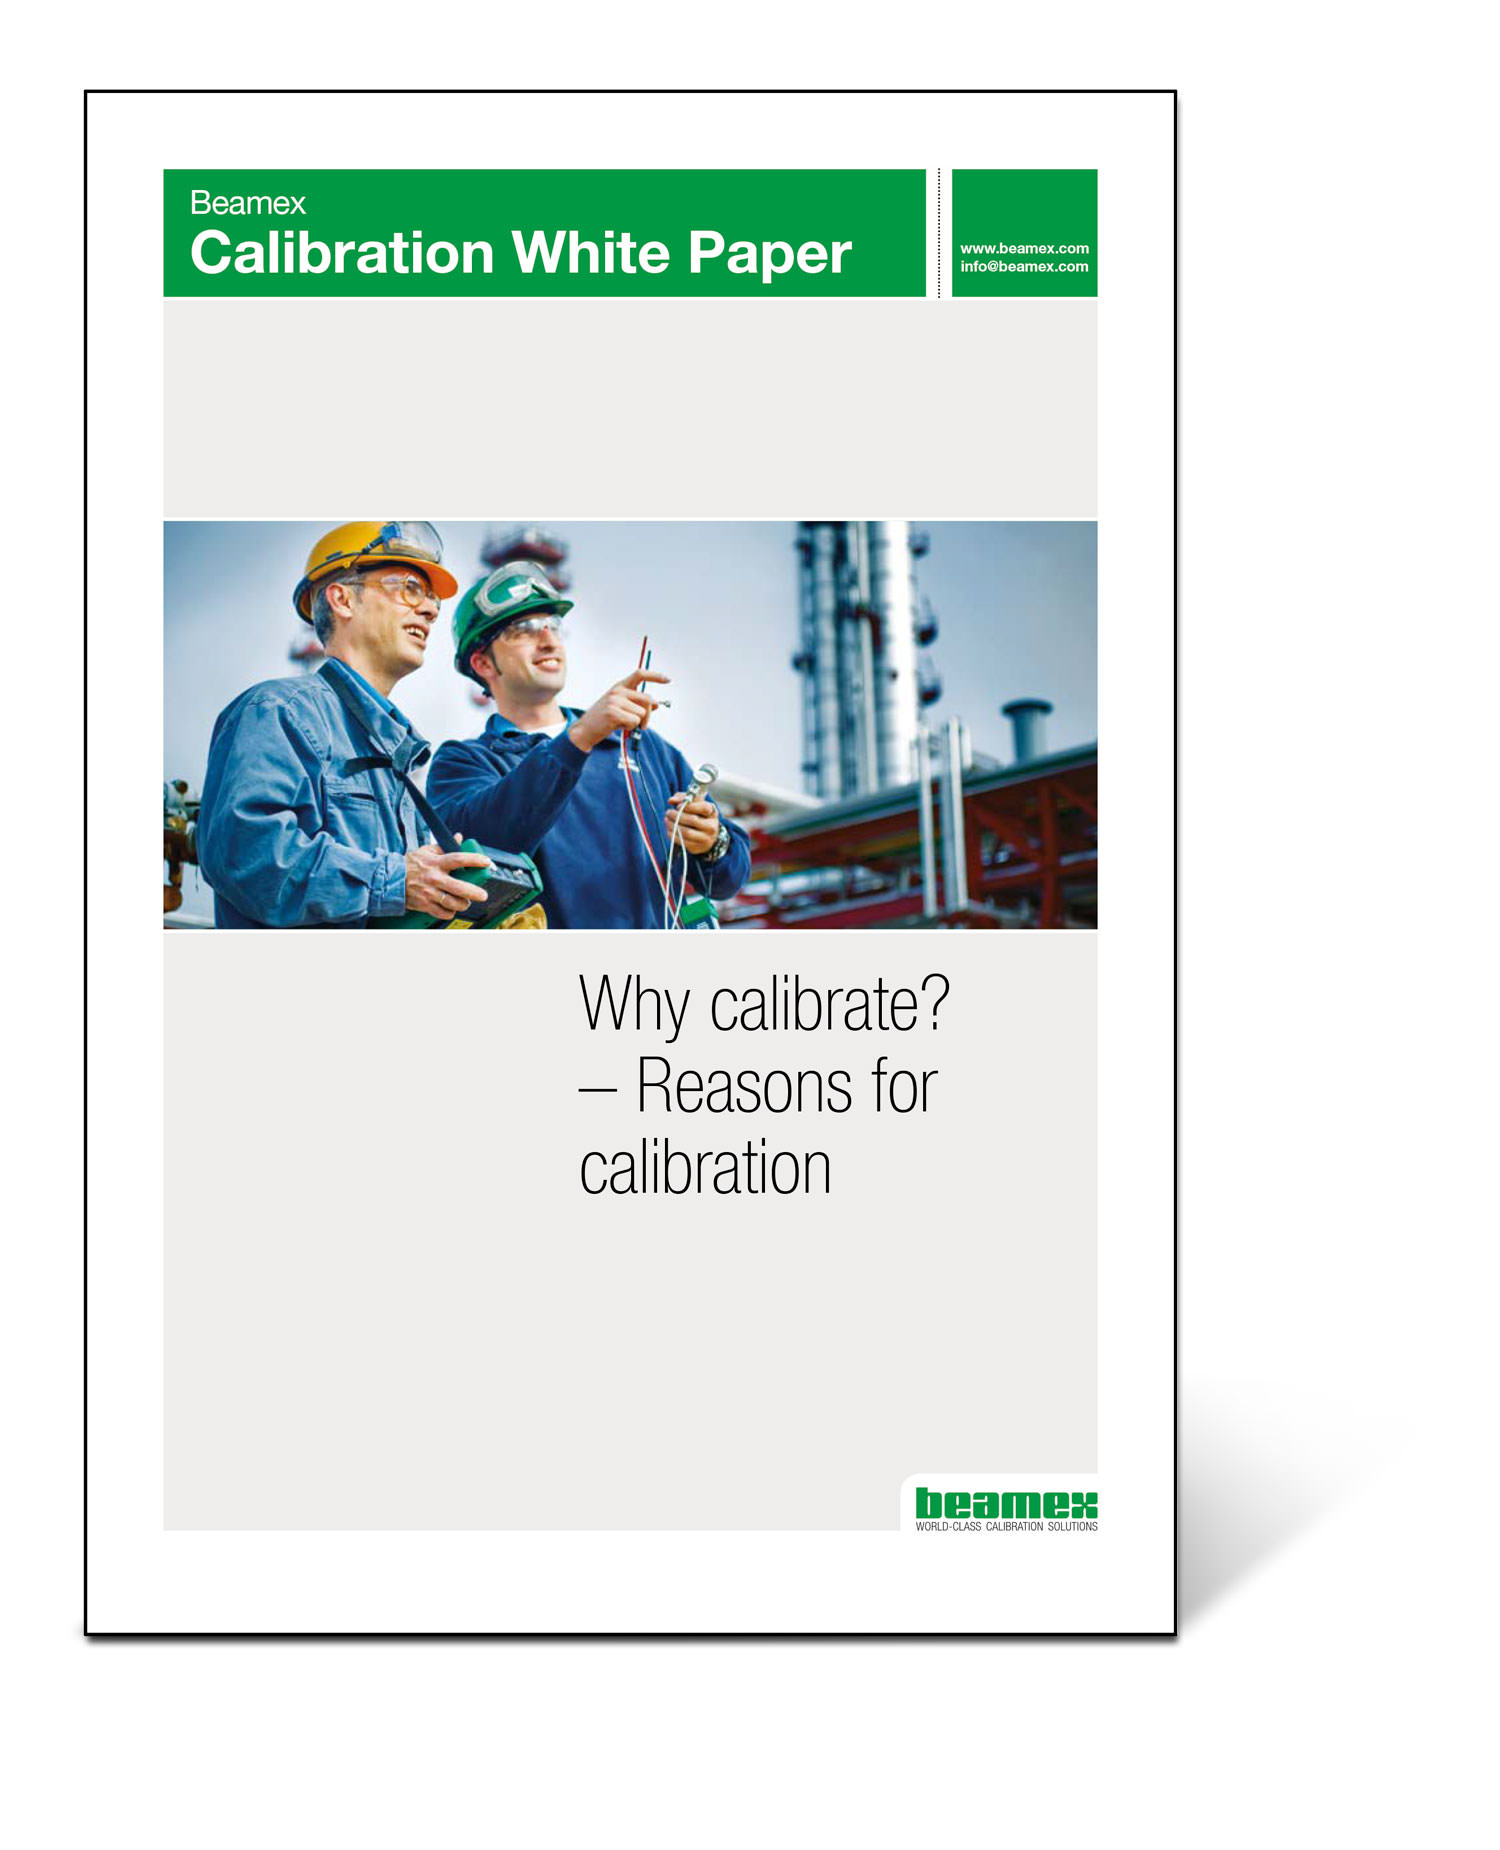 Why calibrate? Beamex white paper